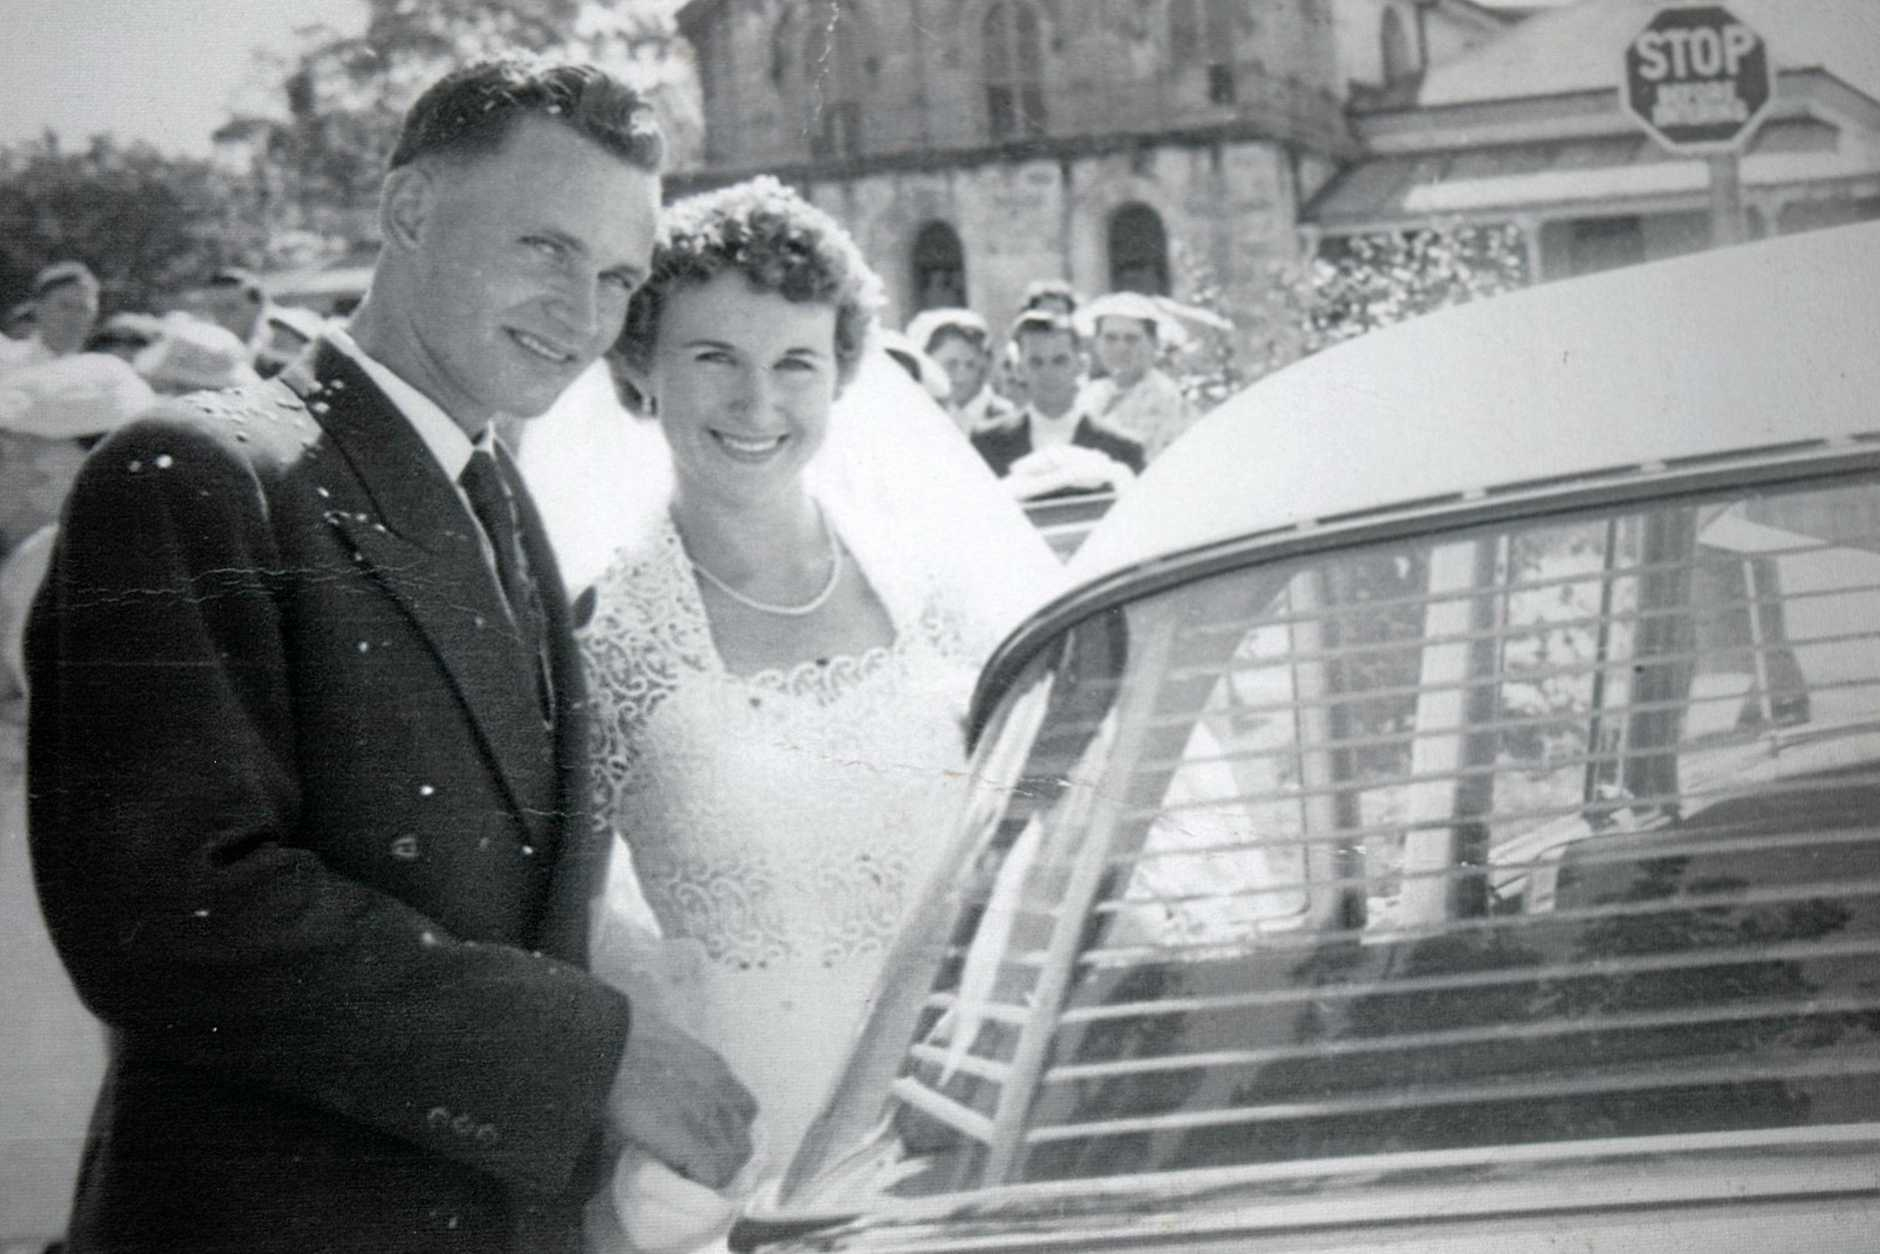 Glen and Joan Verrall on their wedding day in 1958.